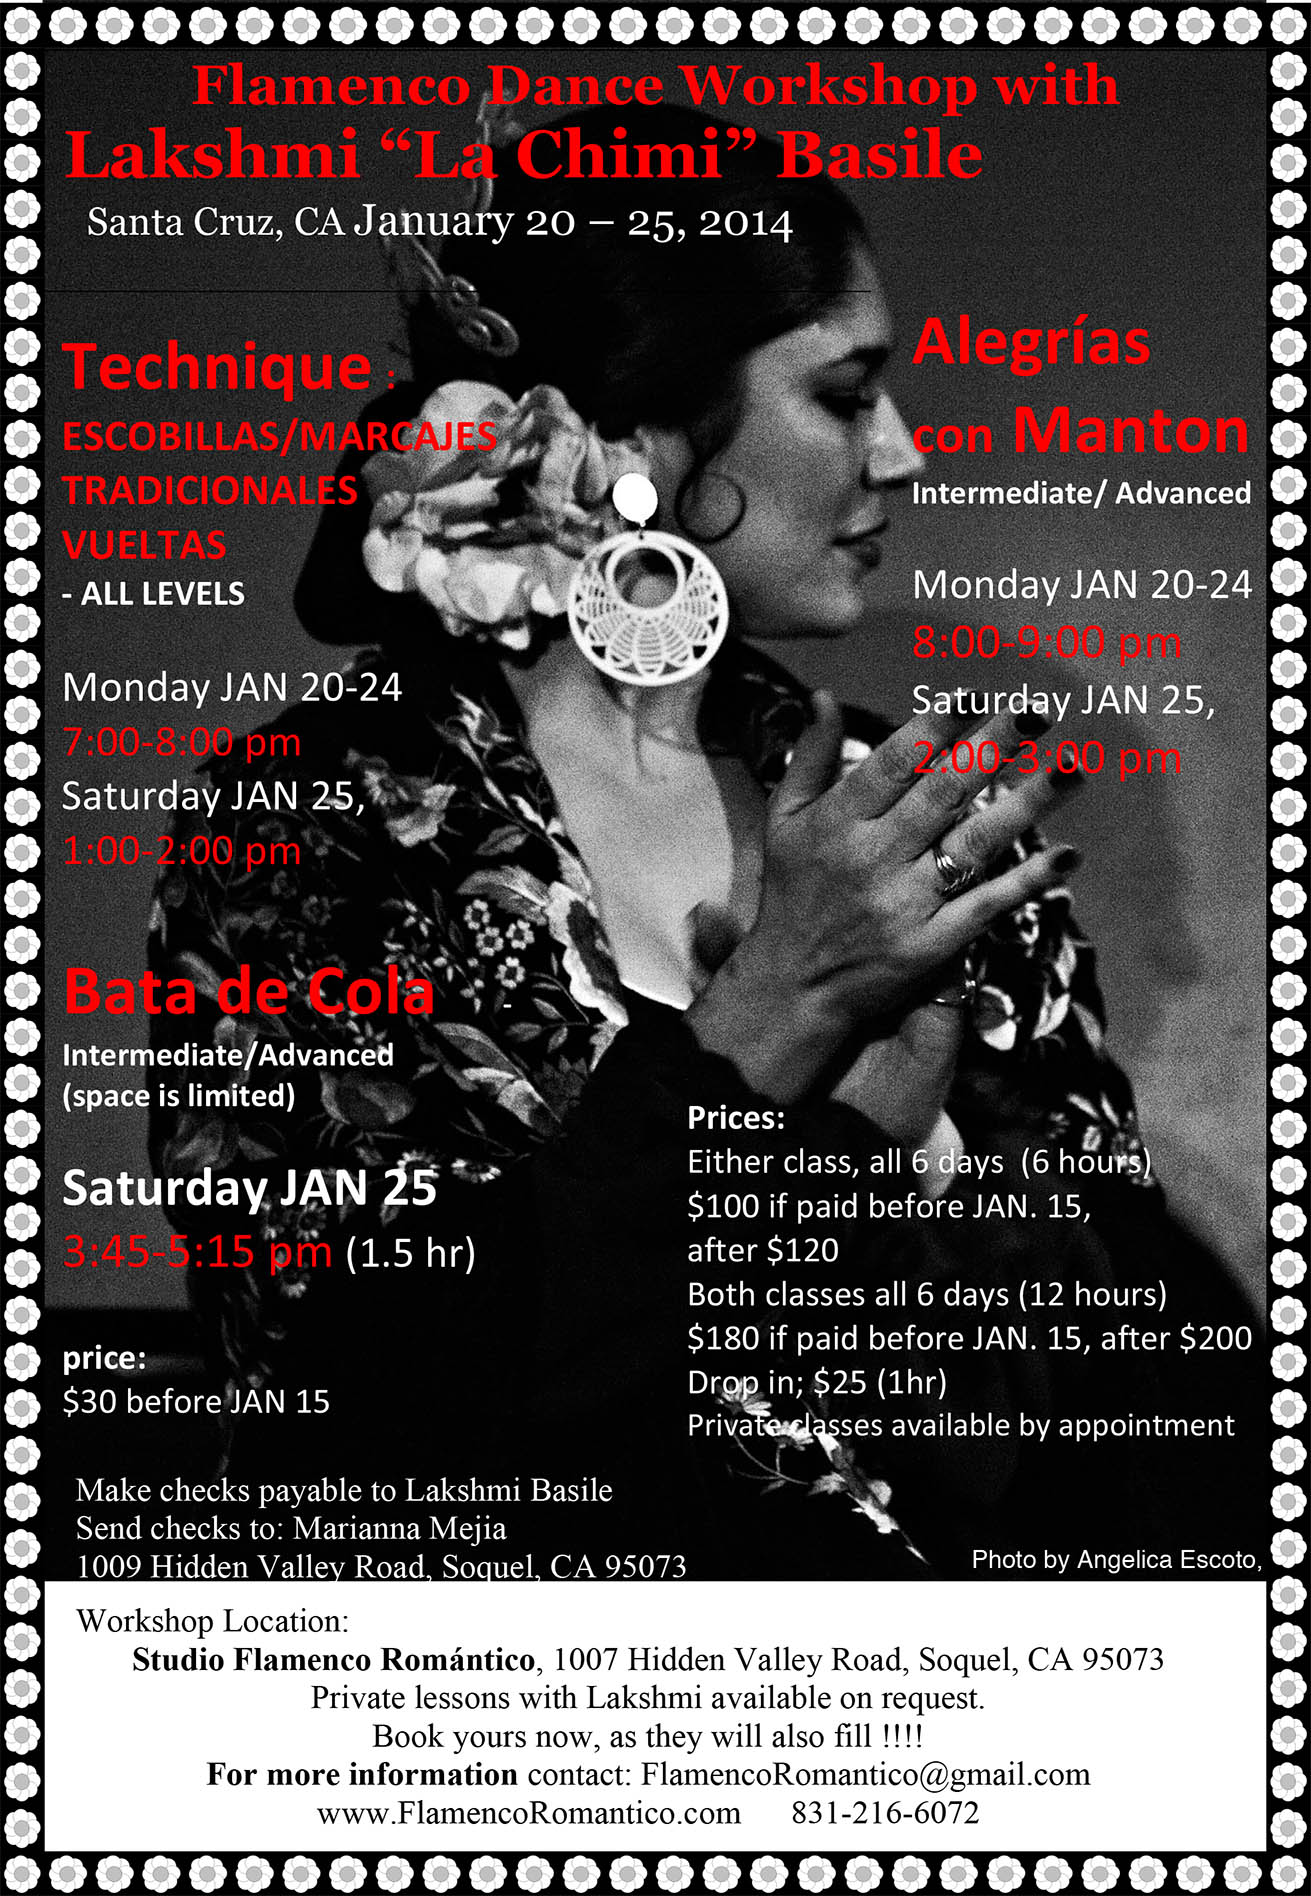 Flamenco Workshop with Lakshmi